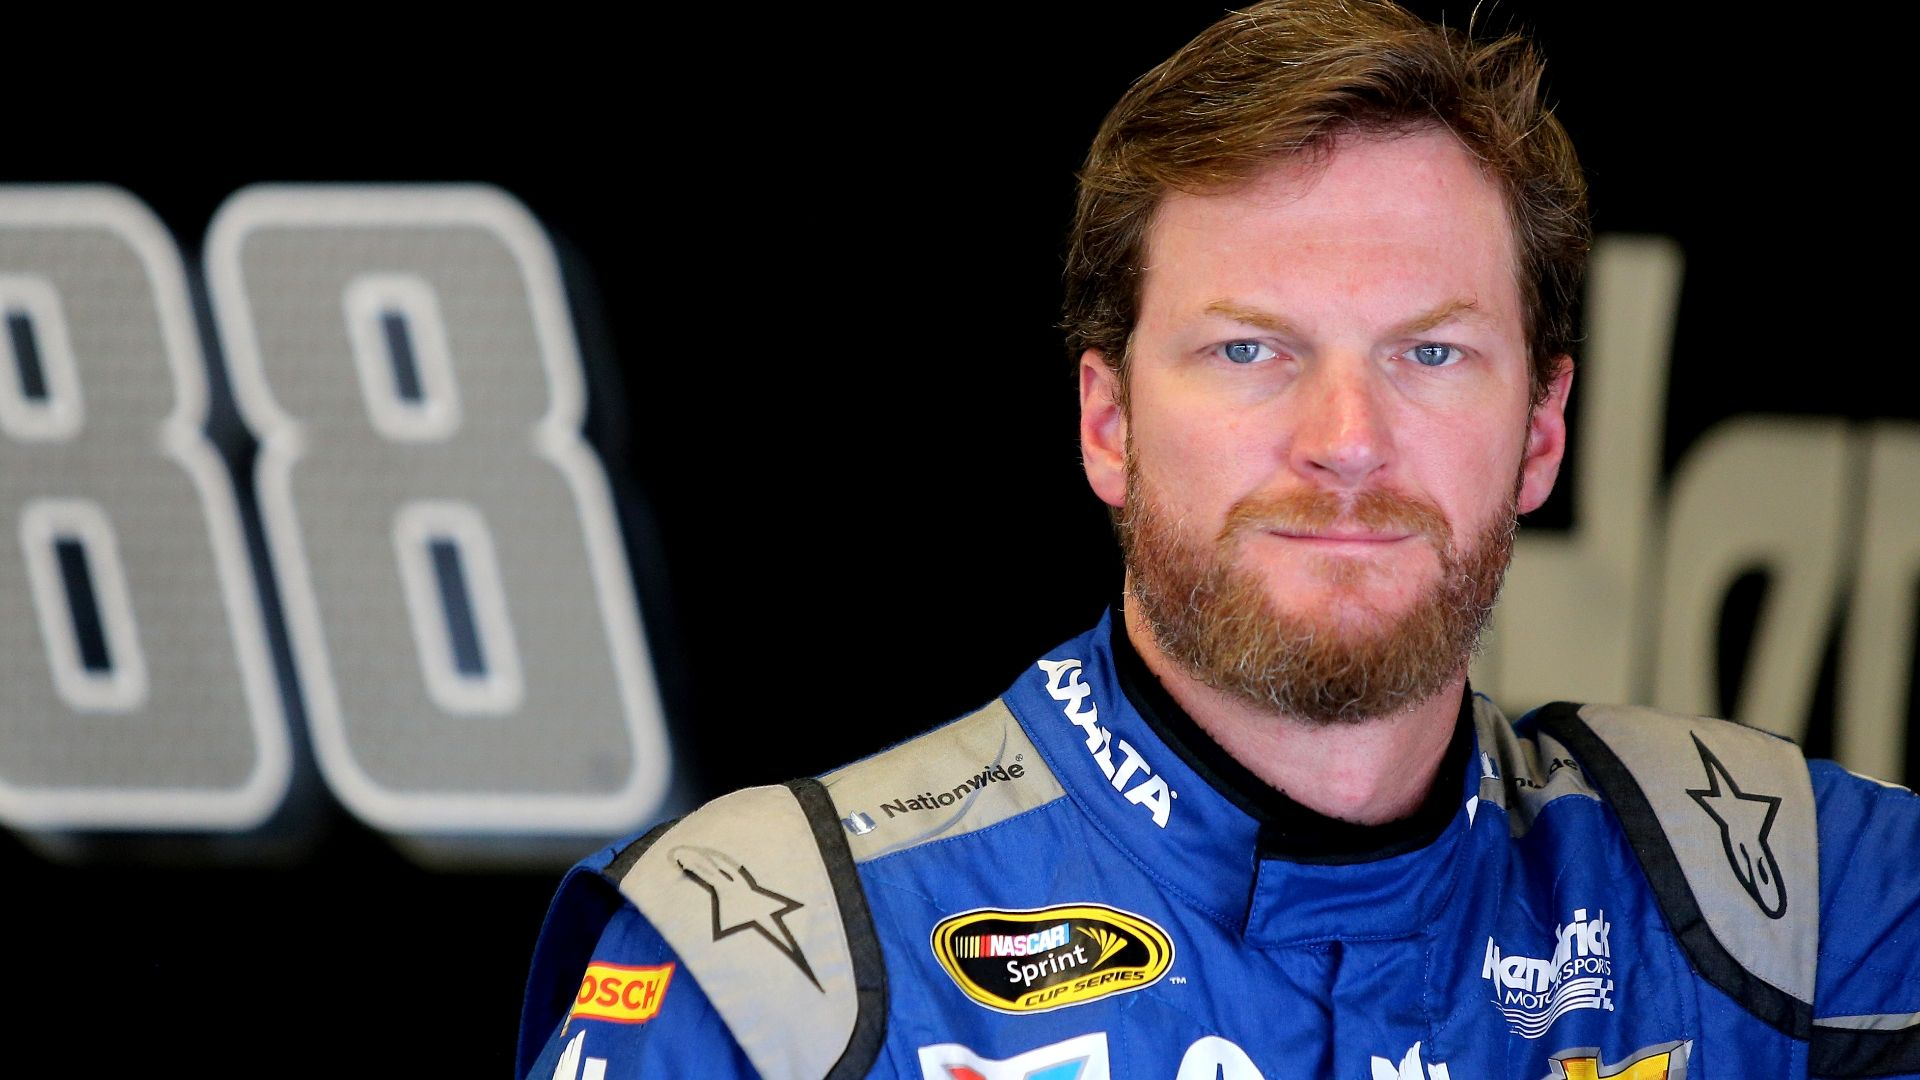 Earnhardt Jr. puts health over desire to drive